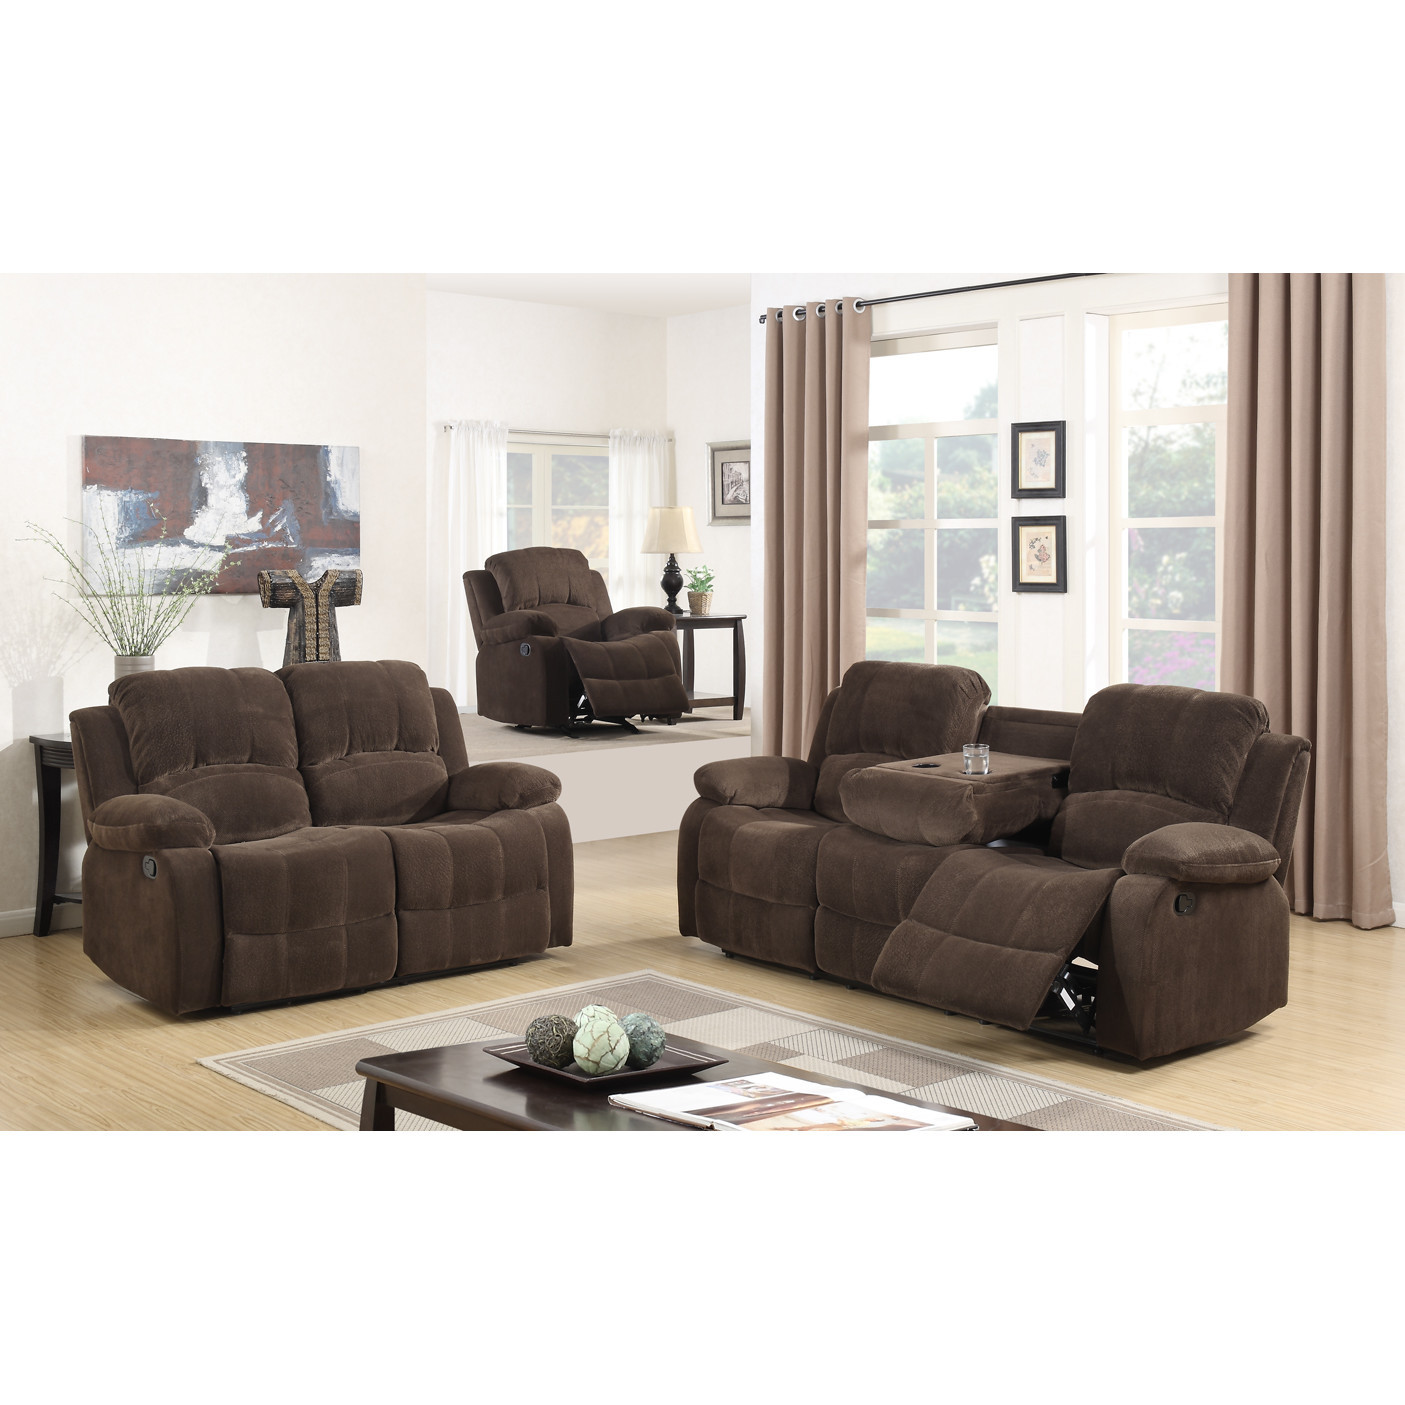 Best ideas about Wayfair Living Room Furniture . Save or Pin Best Quality Furniture Fabric 3 Piece Recliner Living Room Now.